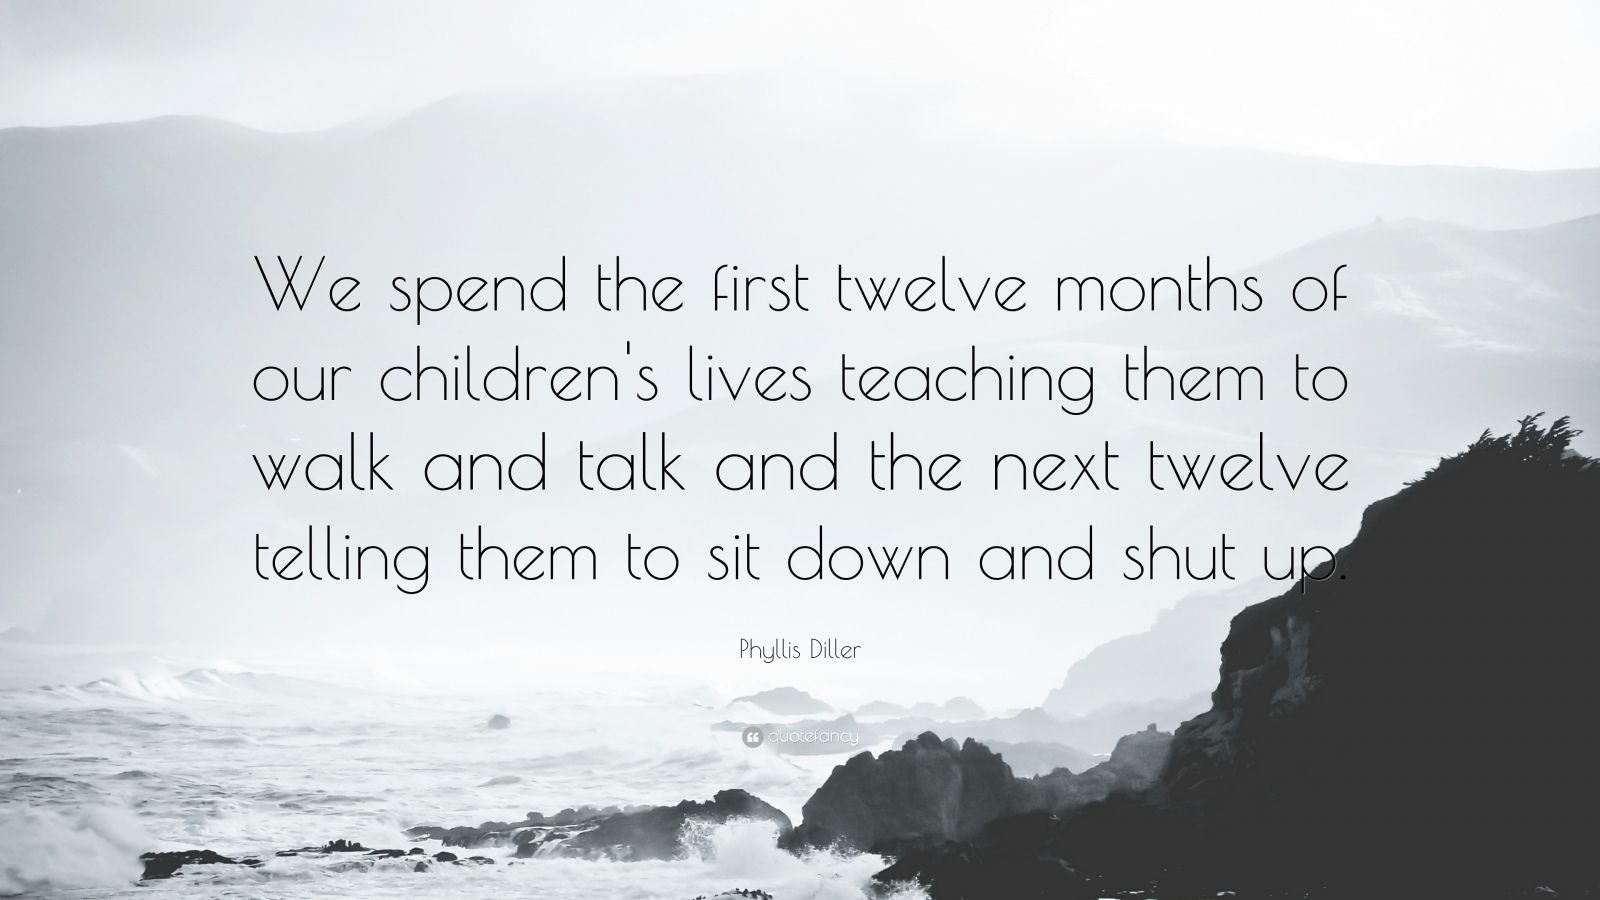 """Phyllis Diller Quote: """"We spend the first twelve months of our children's lives teaching them to walk and talk and the next twelve telling them to sit down and shut up."""""""